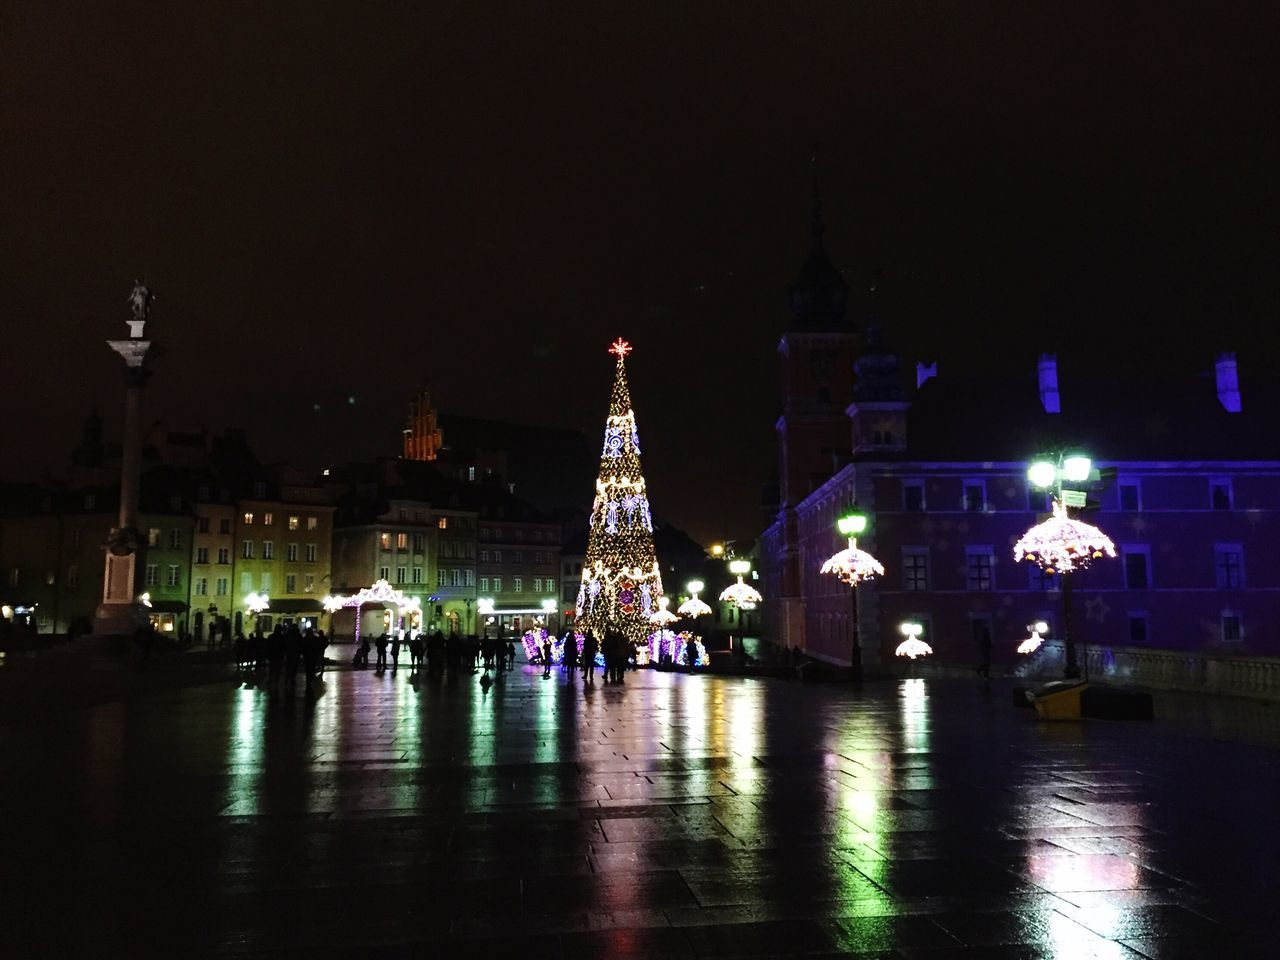 Oldtown Christmas Lights Rain Reflection Water Reflections Winter_collection Lotti On Tour